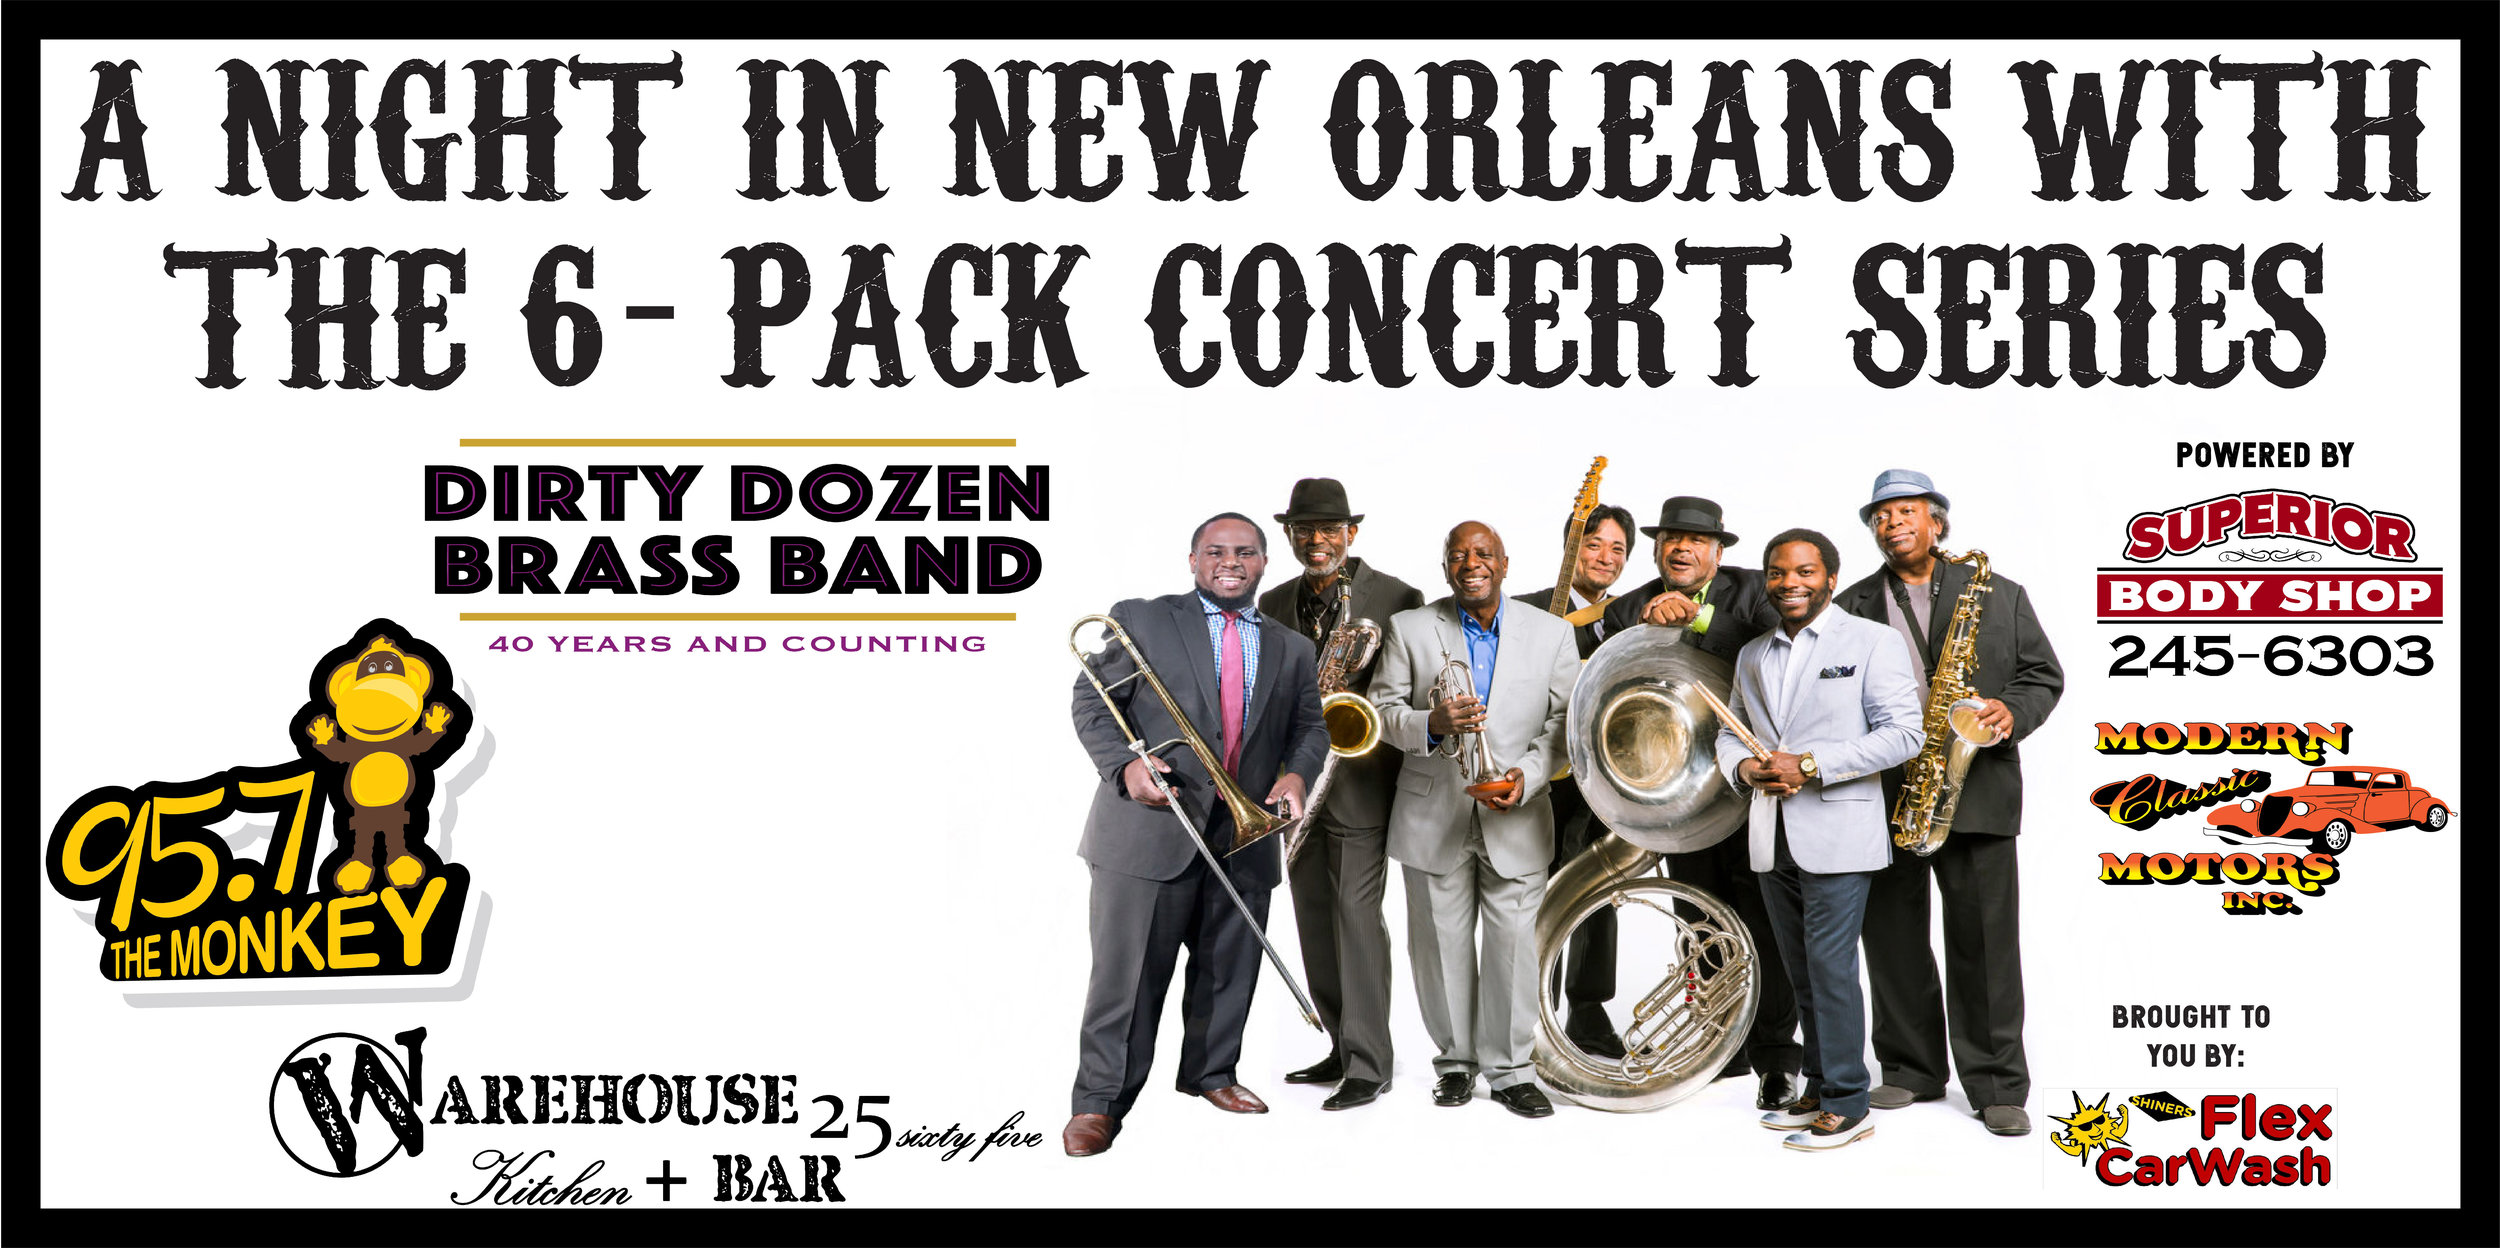 GJ get ready for some New Orleans brass heading to the Warehouse for and unforgettable night of live Blues, Jazz and that sweet New Orleans Funk music! The Warehouse and 92.3 The Moose will turn into a night in New Orleans with all the favorite menu items and music for a great night out in Grand Junction, CO!